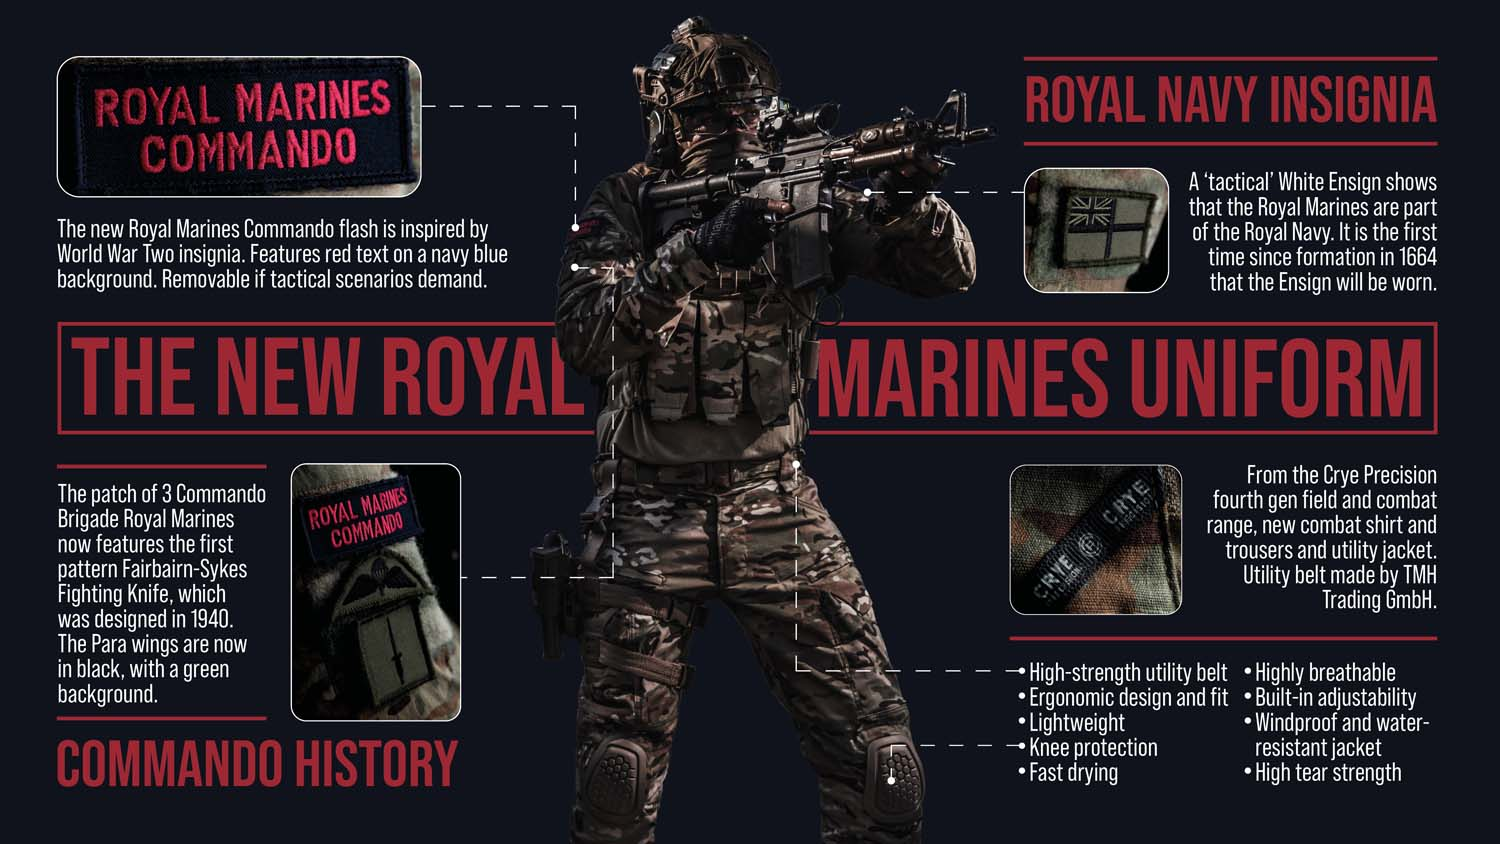 RoyalMarineCommando.jpeg